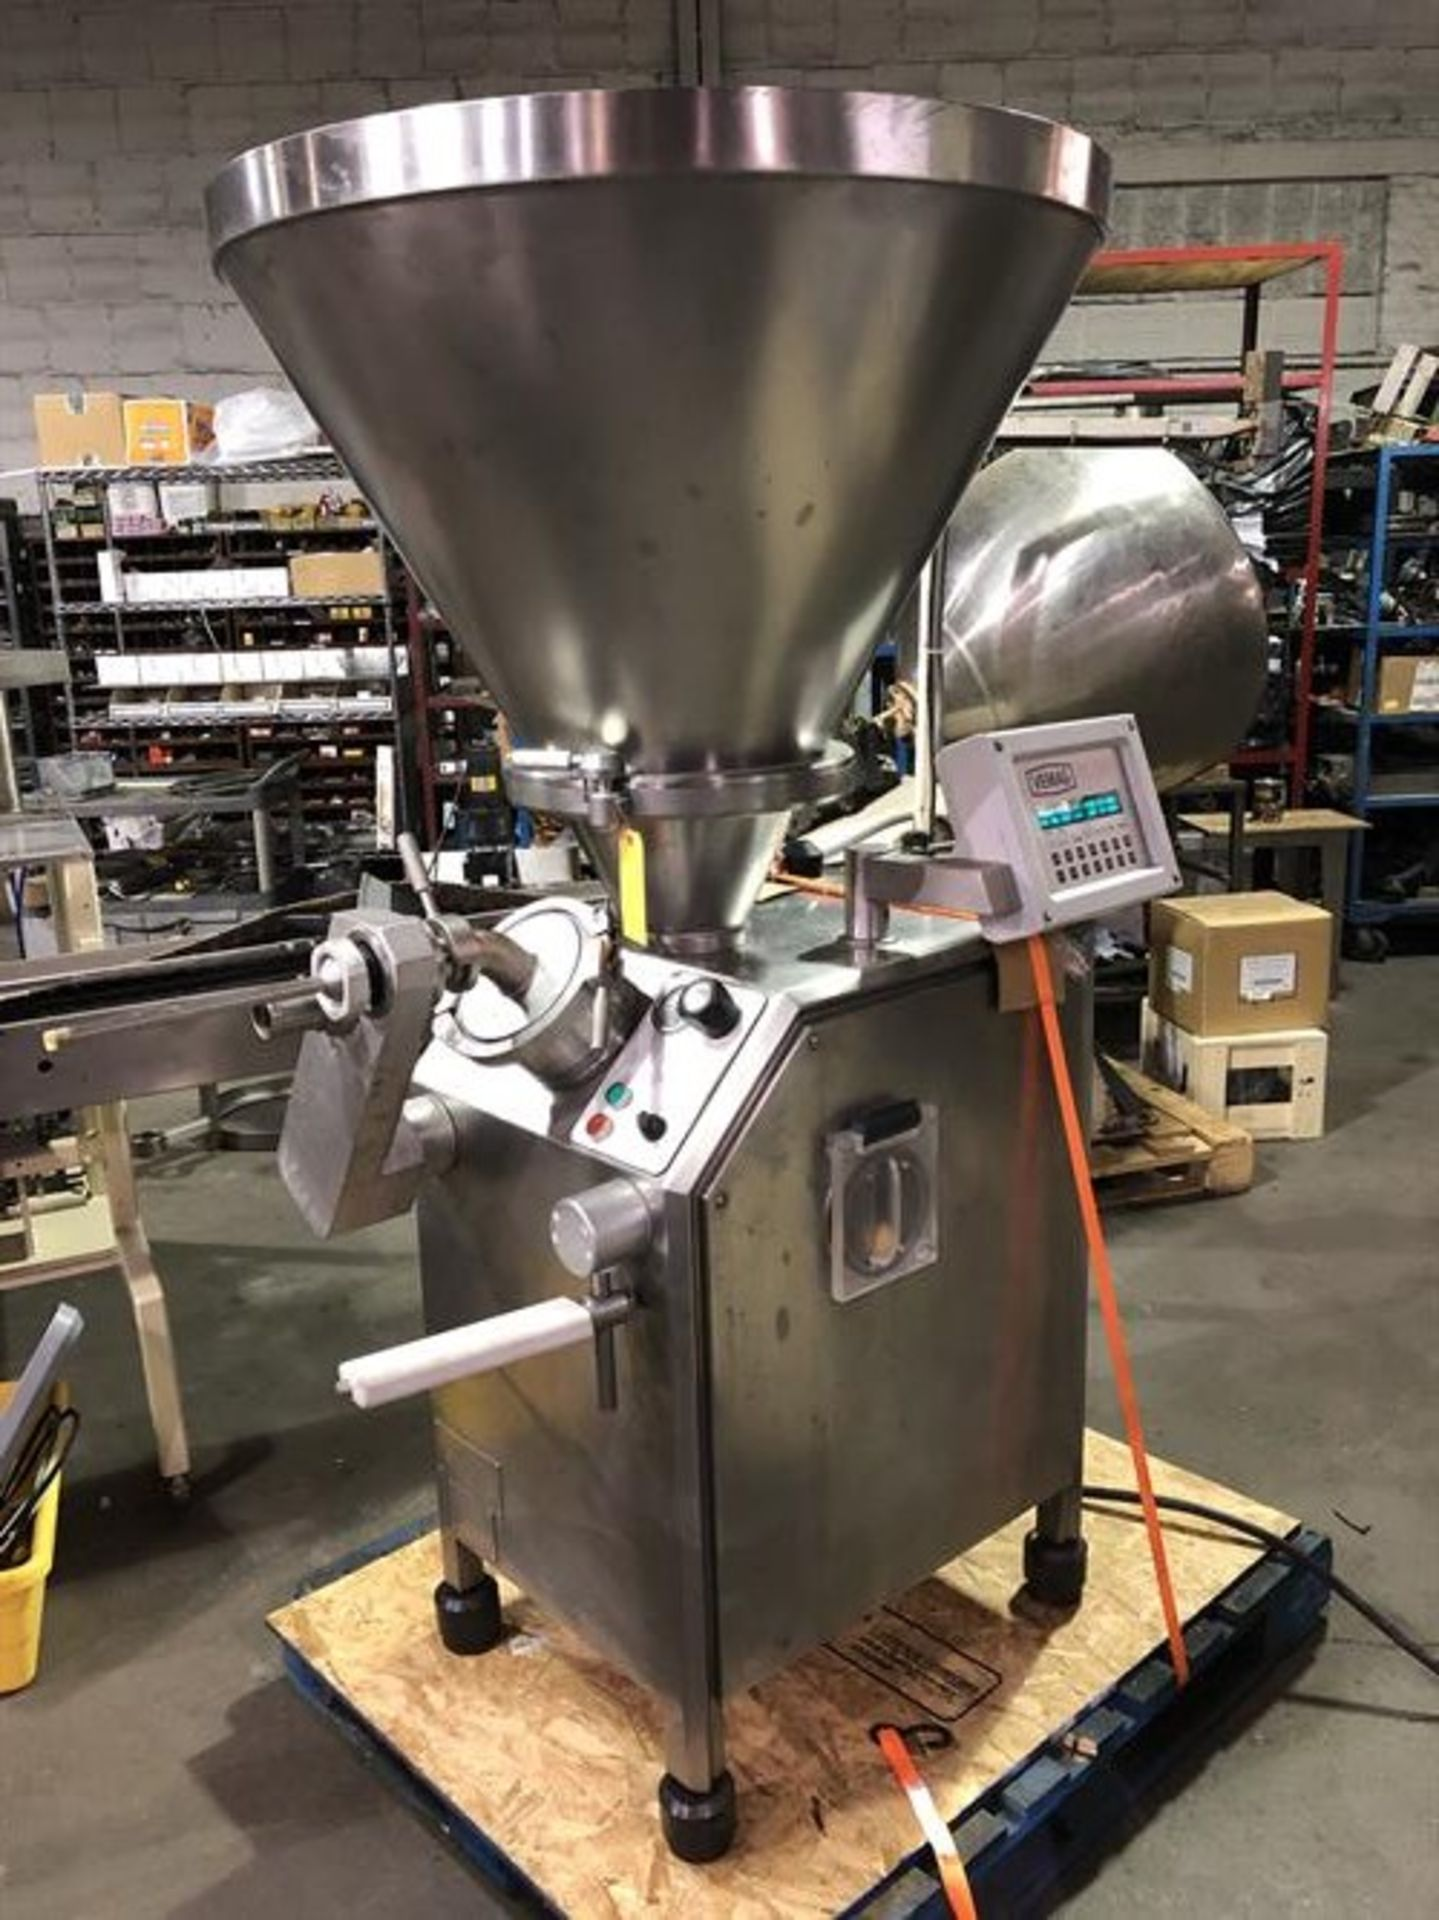 Vemag Robot 500 Stainless Steel Vacuum Stuffer - Machine has been completely reconditioned - PC - Image 5 of 31